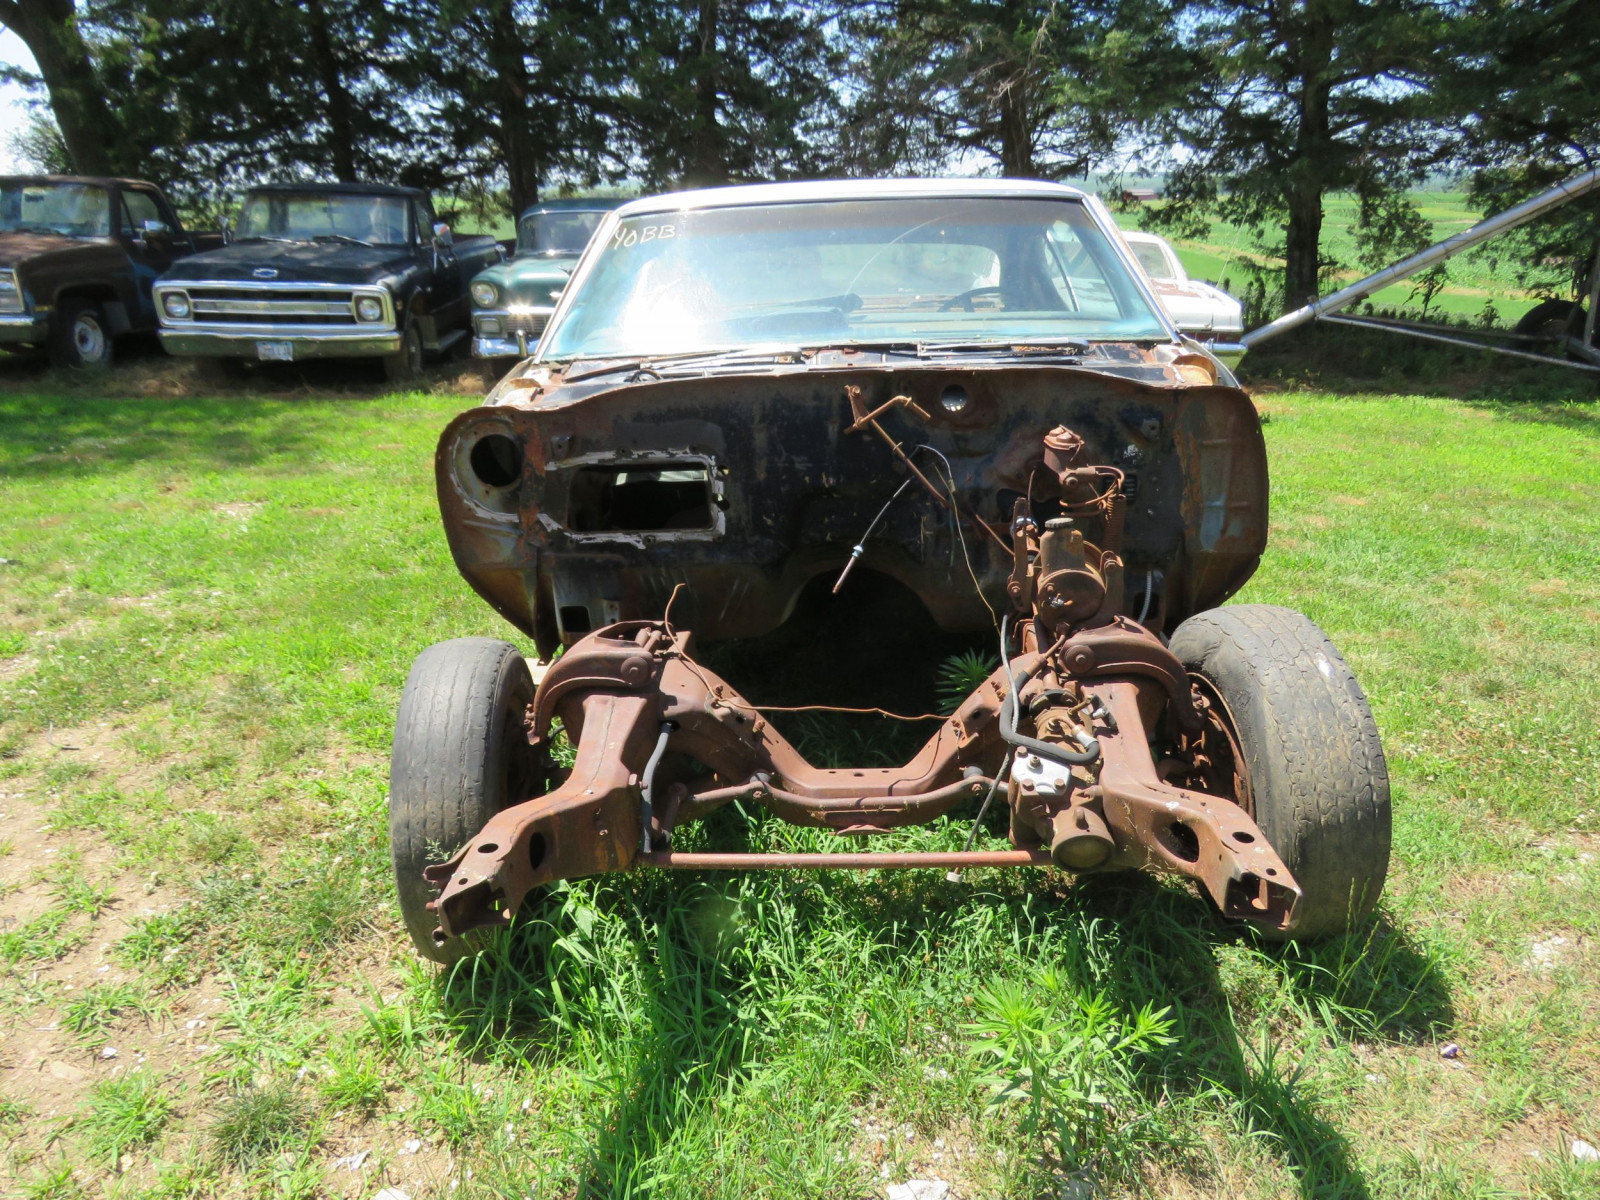 1968 Chevrolet Chevelle 2dr HT Project or Parts - Image 2